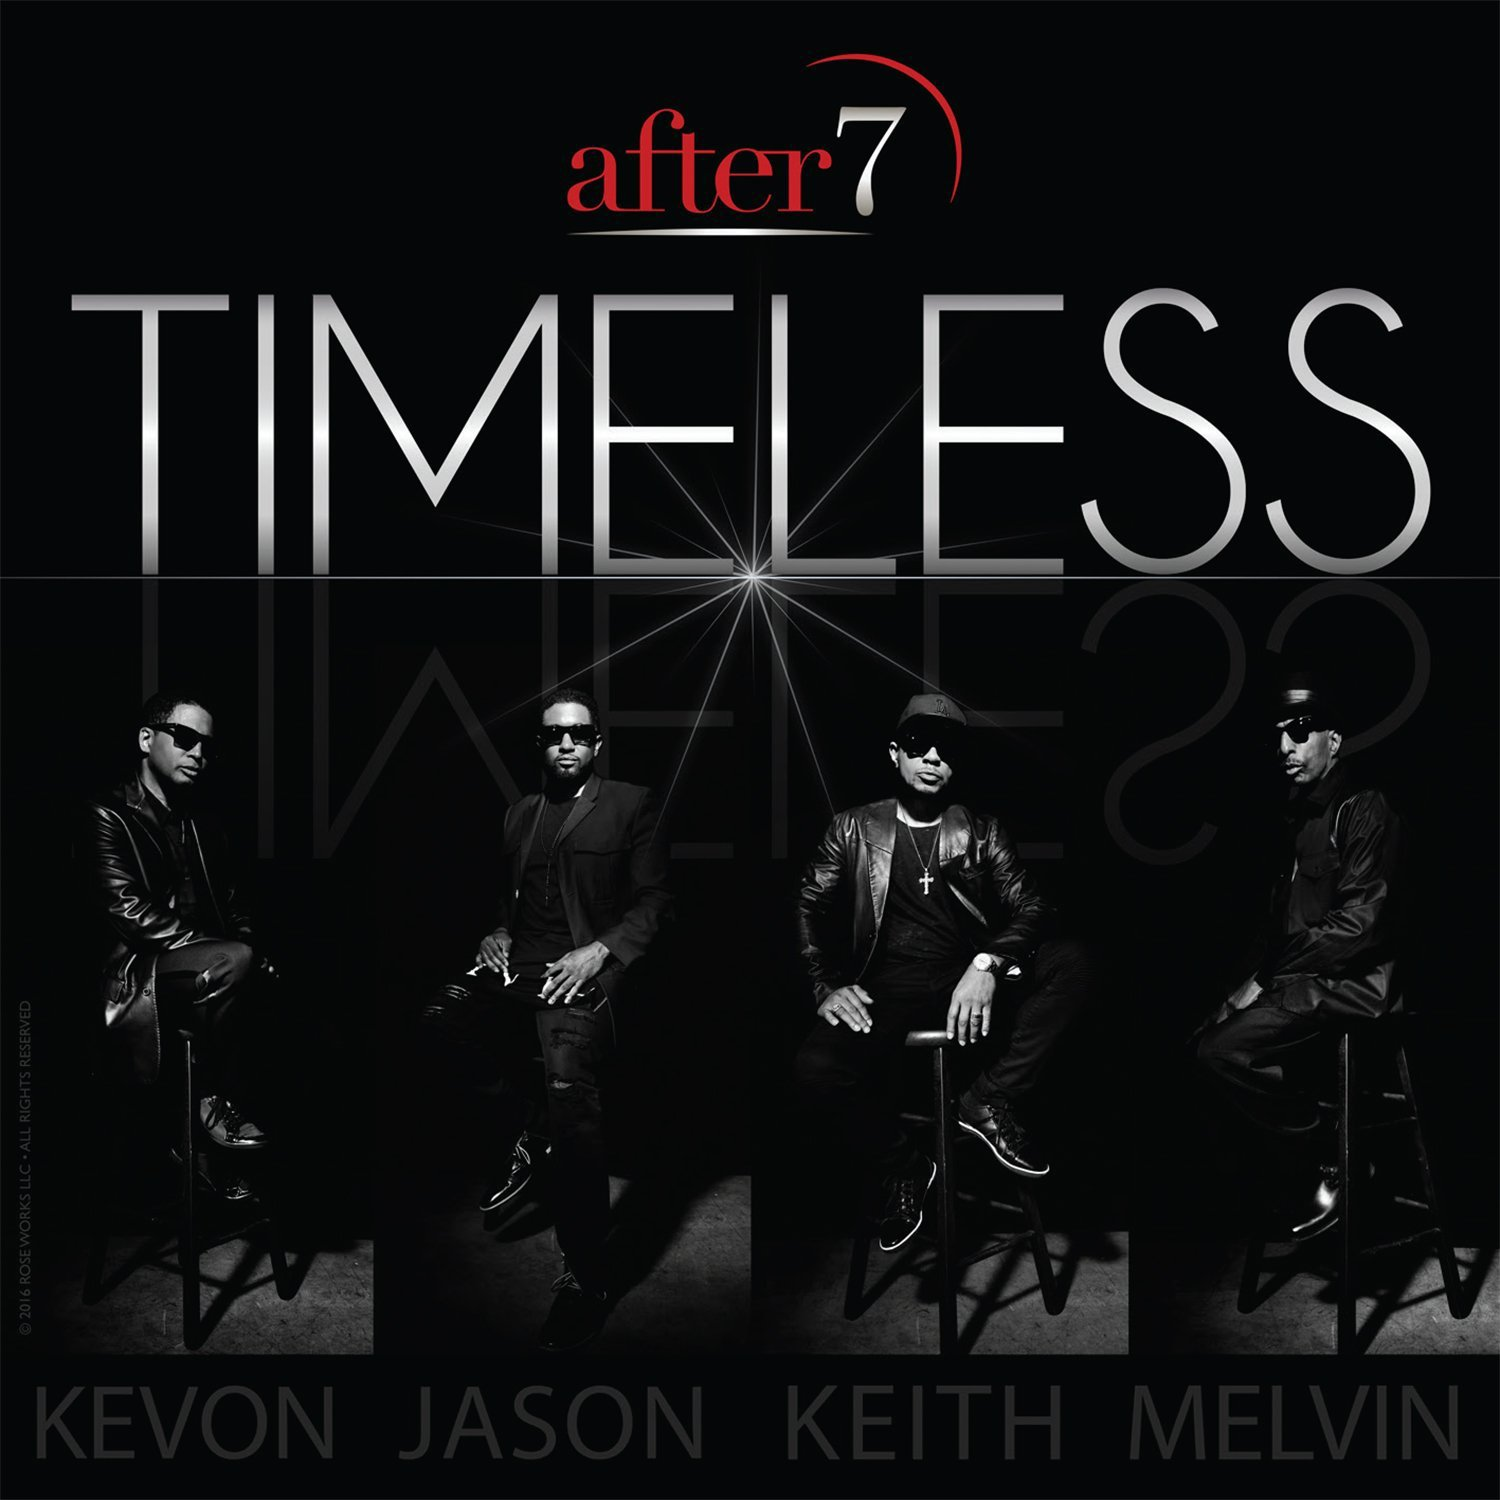 CD : After 7 - Timeless (CD)